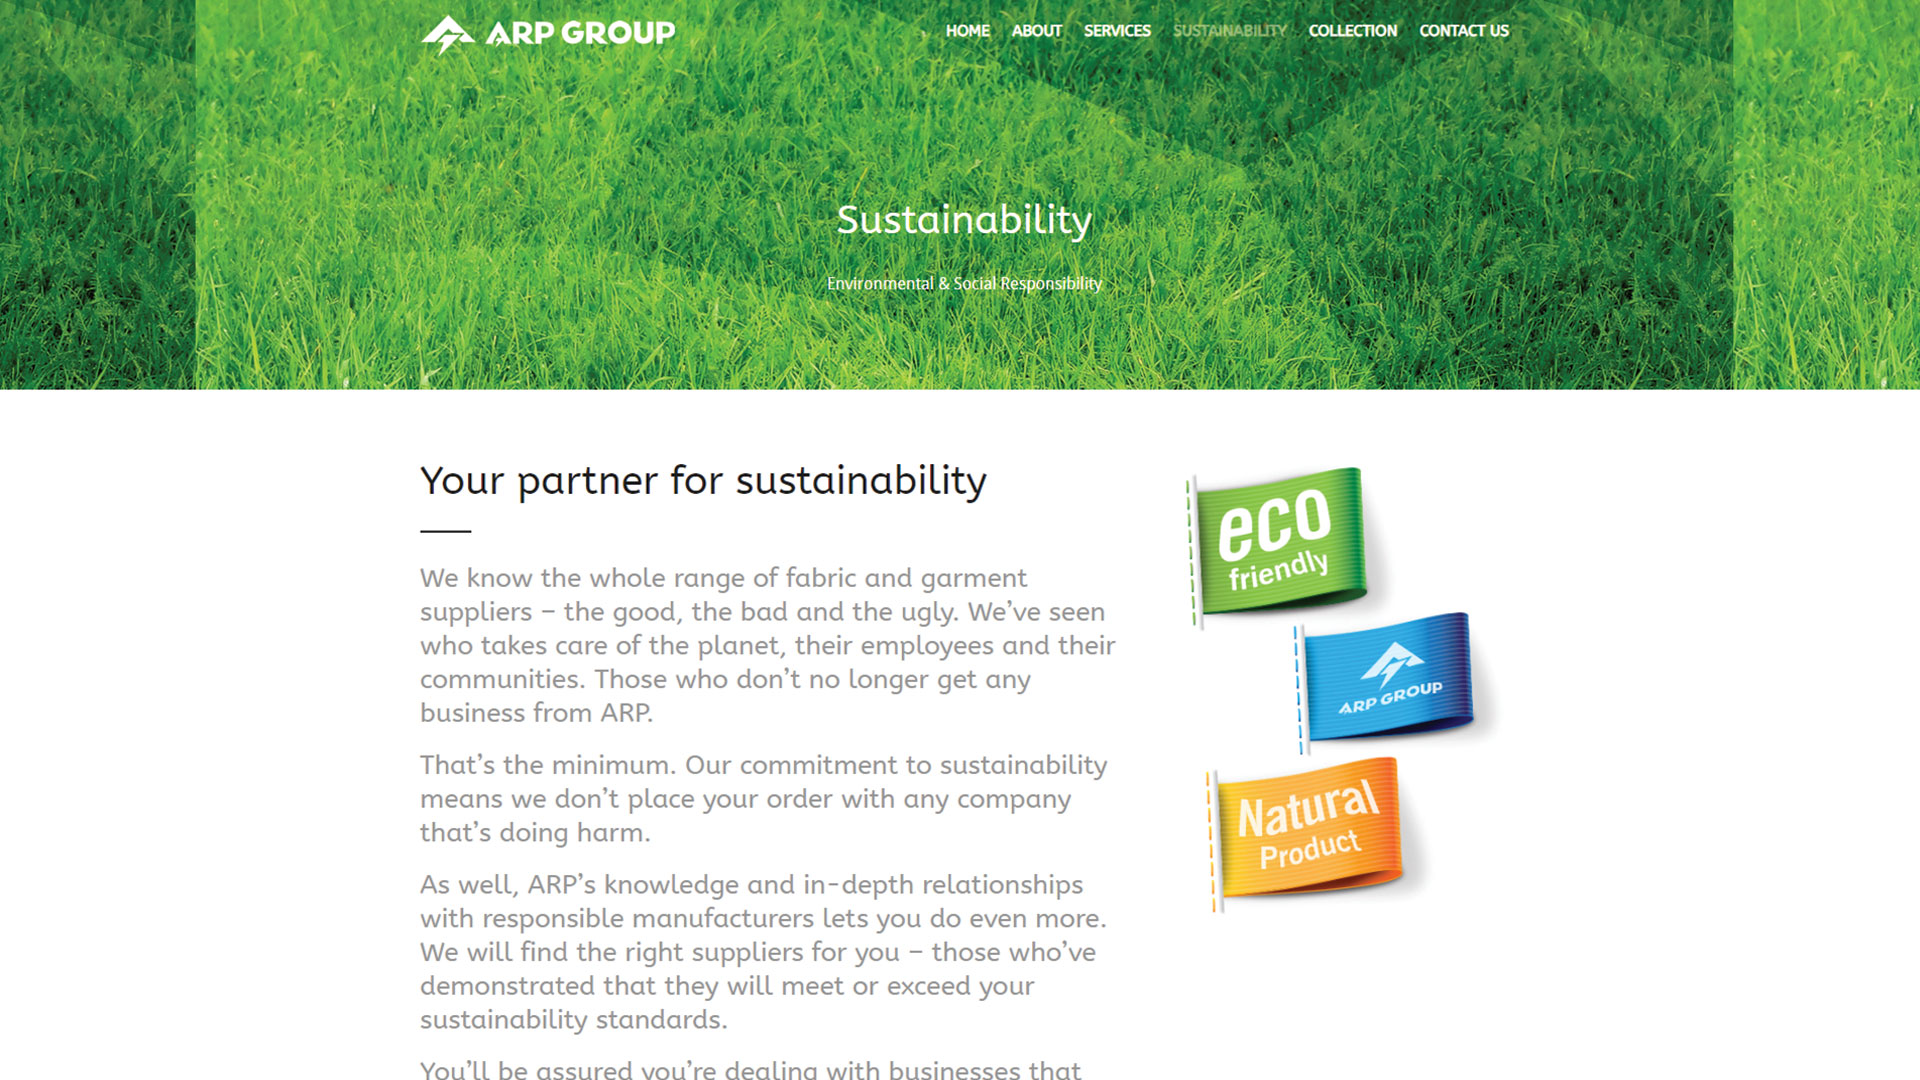 arp-group-Vancouver-web-design-Vancouver-web-development-by-mapleweb-canada-sustainability-green-grass-page-image